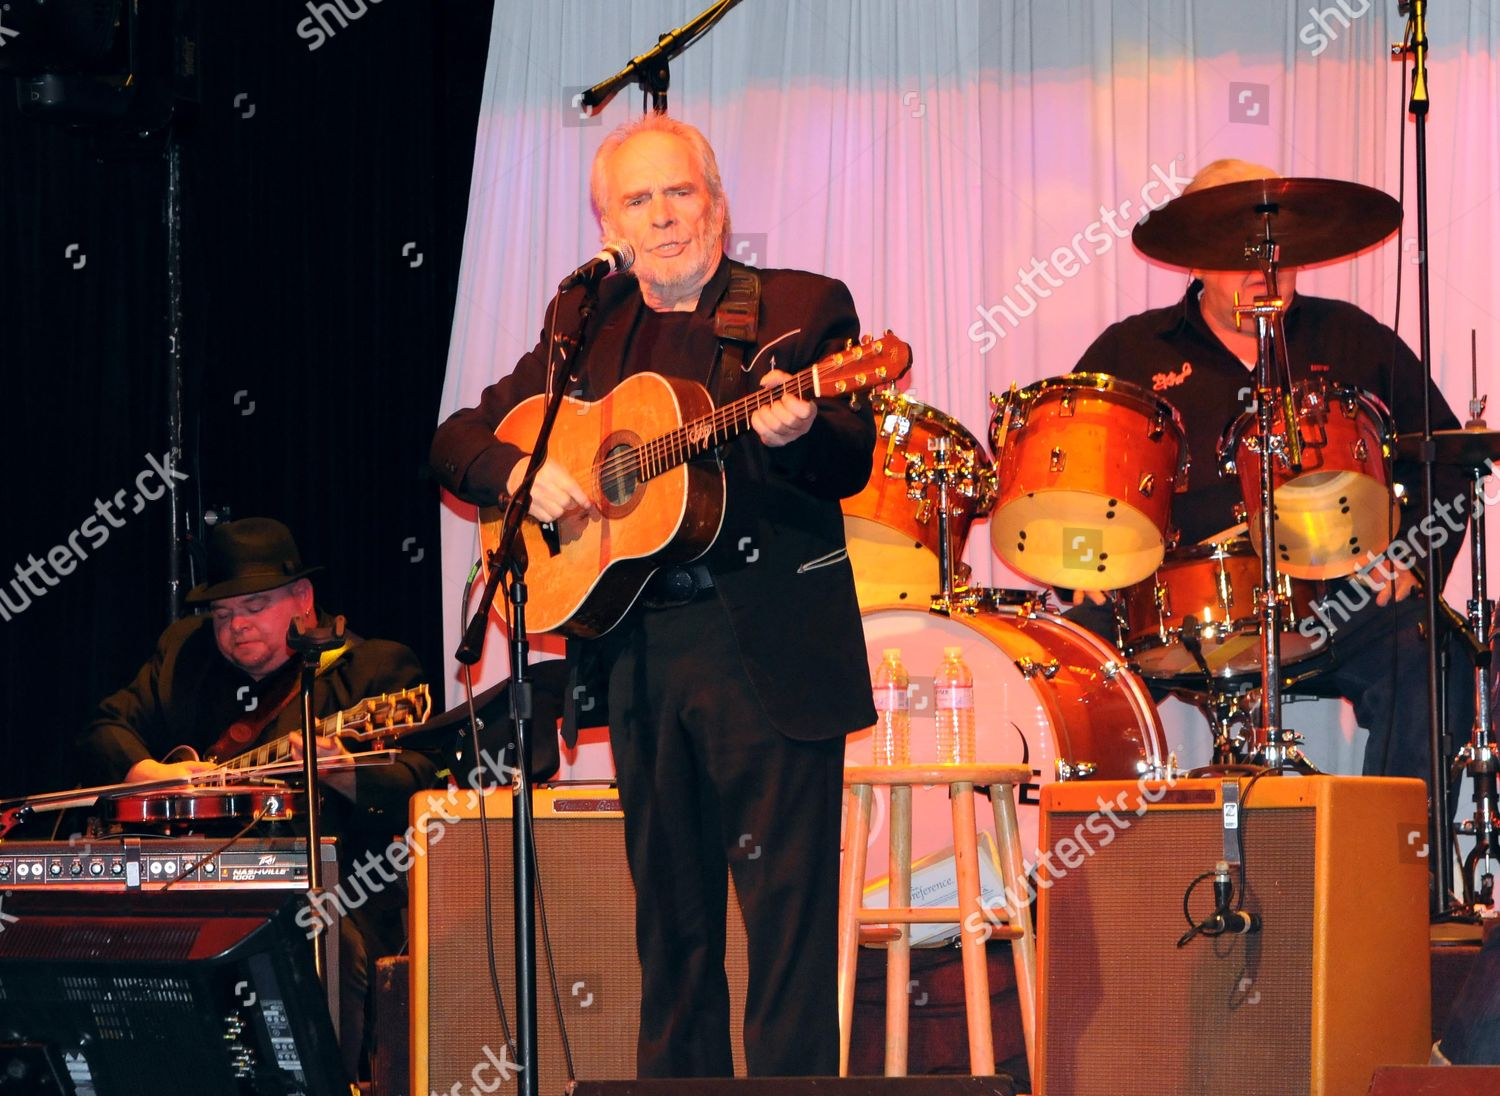 Merle Haggard Editorial Stock Photo - Stock Image | Shutterstock